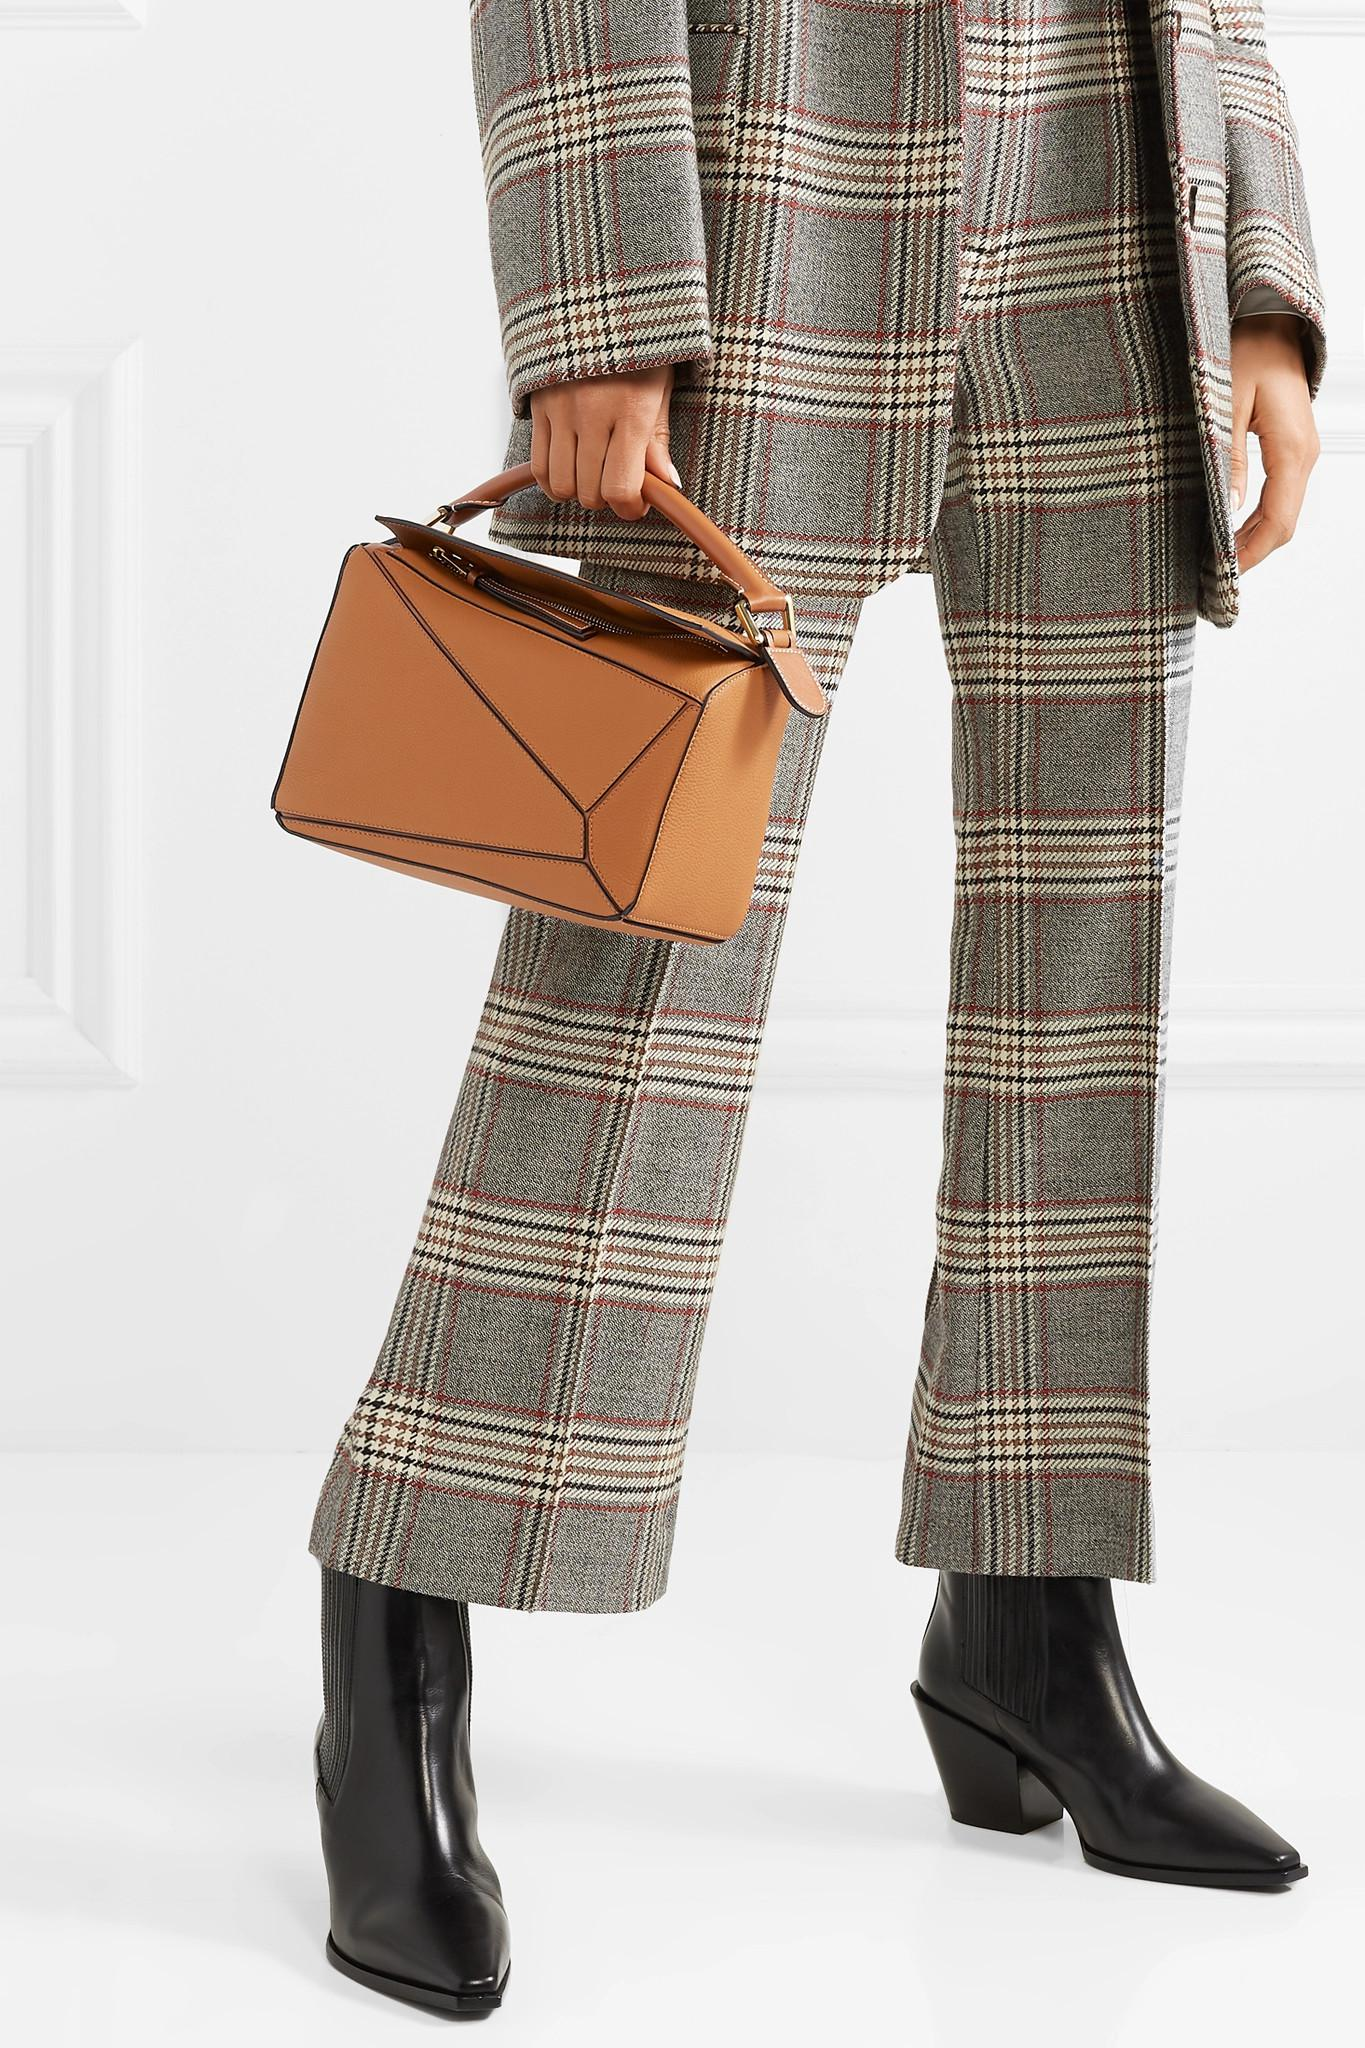 ee8d8c8bea37 Loewe - Brown Puzzle Small Textured-leather Shoulder Bag - Lyst. View  fullscreen